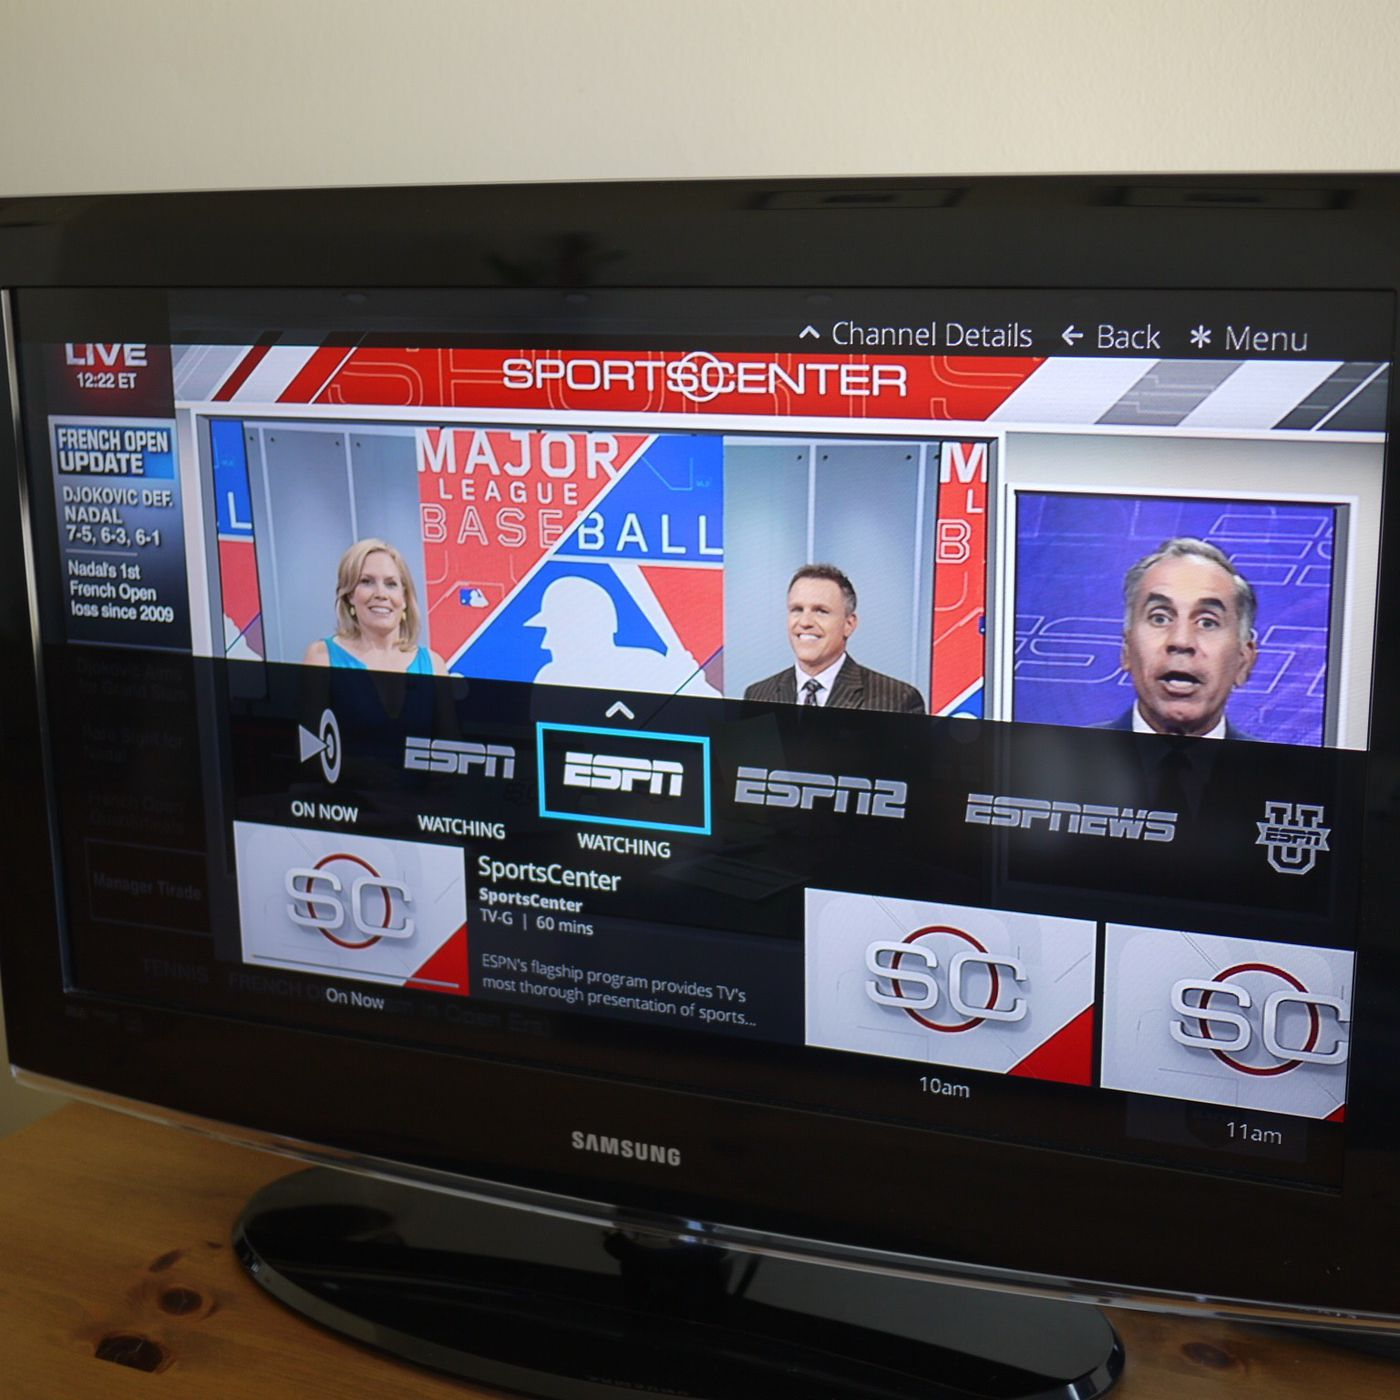 One Month With Sling TV: Why I'm Not Cutting the Cord Yet - Vox